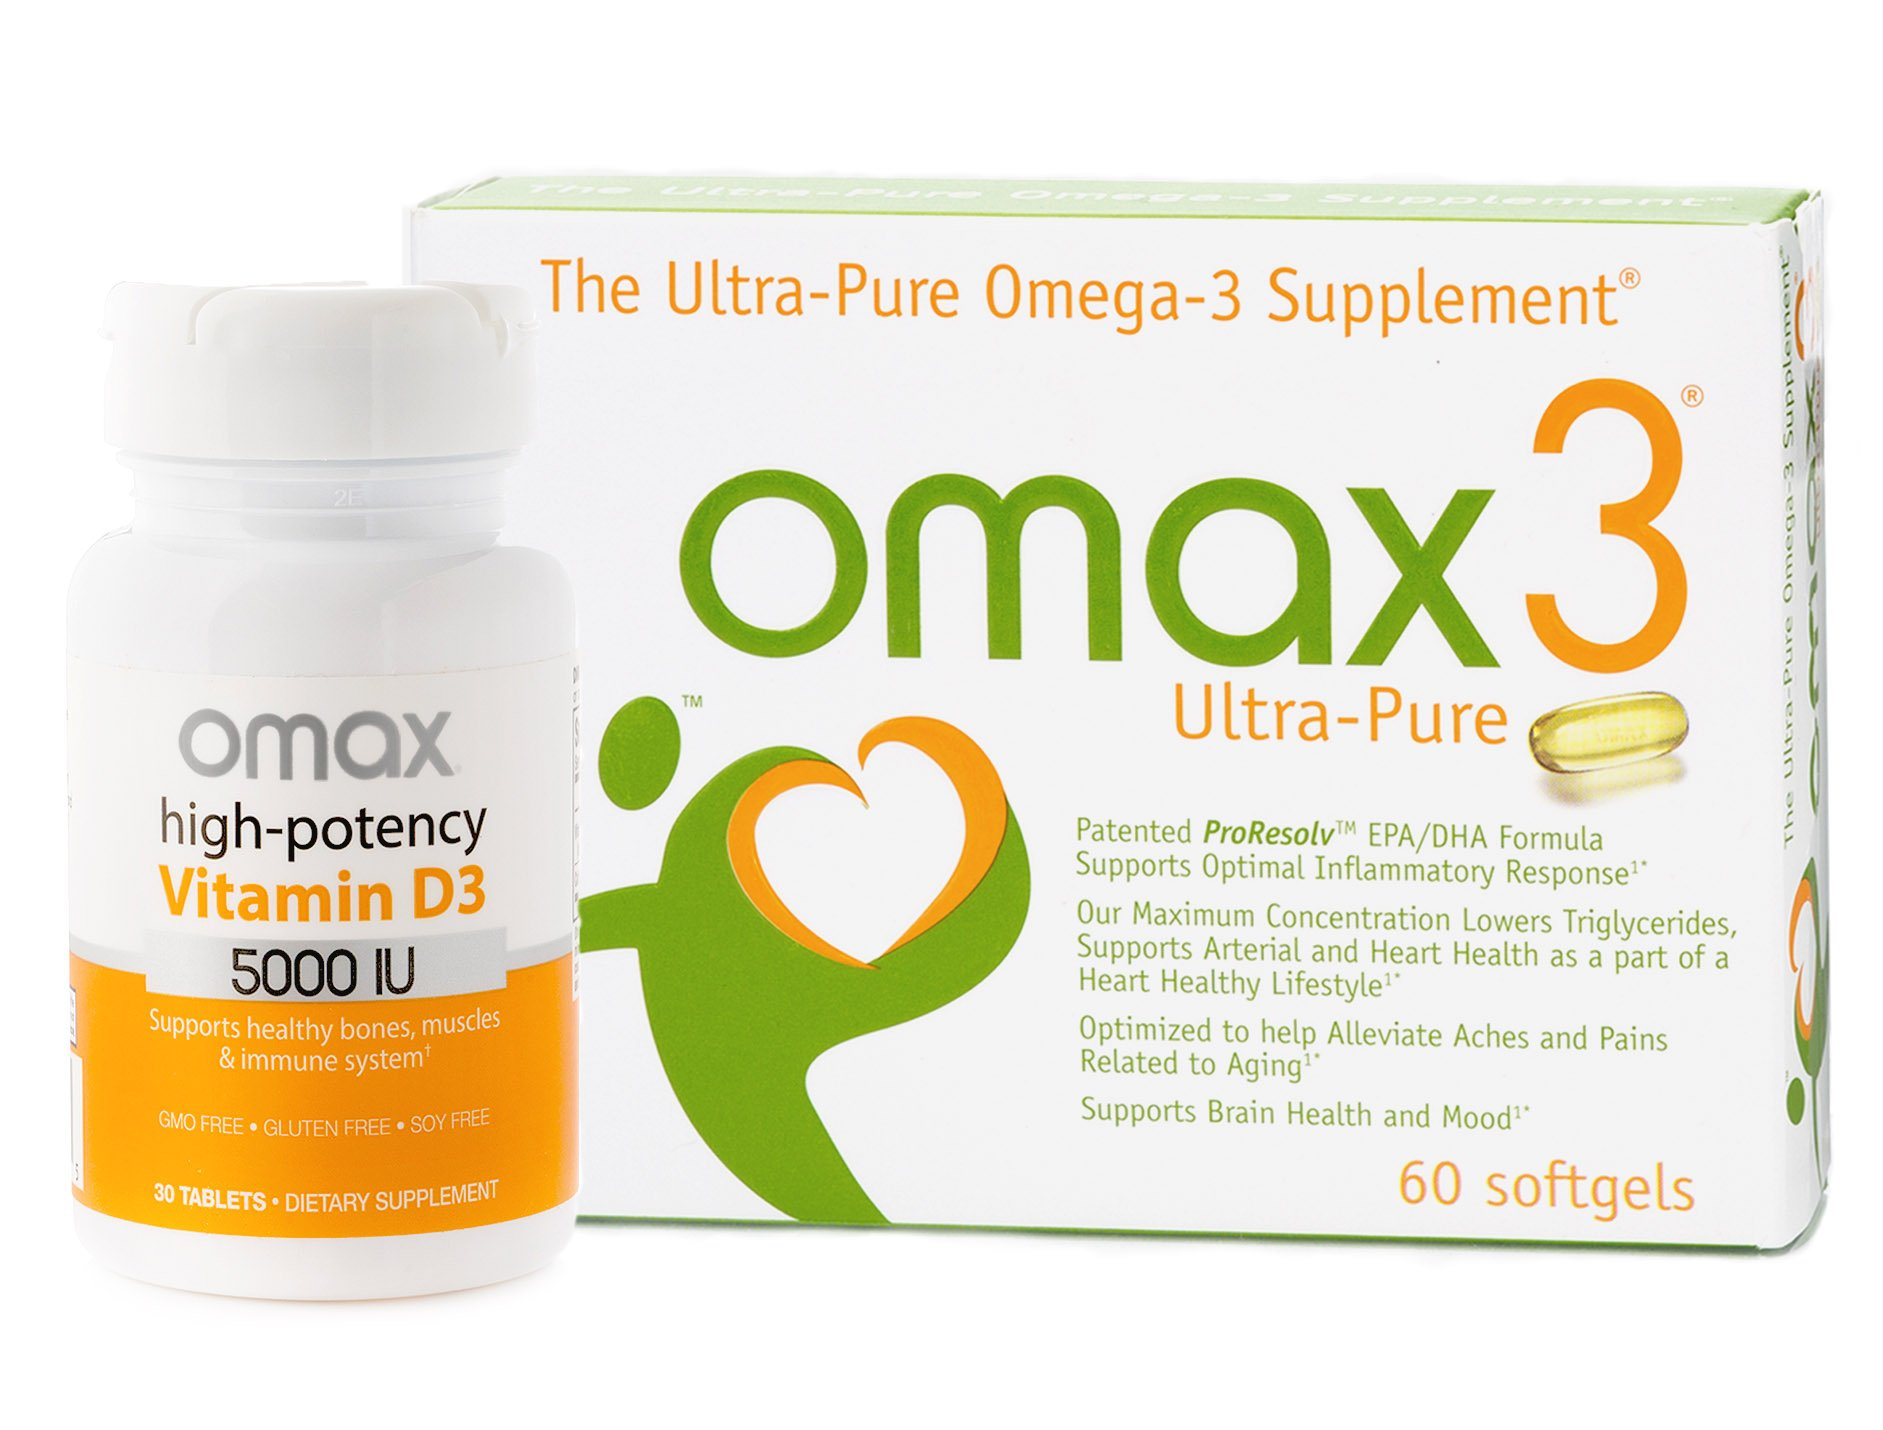 OMAX3® ✱ Bundle ✱ Ultra-Pure 93.9% Omega-3 Fish Oil plus Vitamin D3 ✱ NSF-Certified, Soy-Free, Gluten-Free, Non-GMO ✱ 30-Day Supply